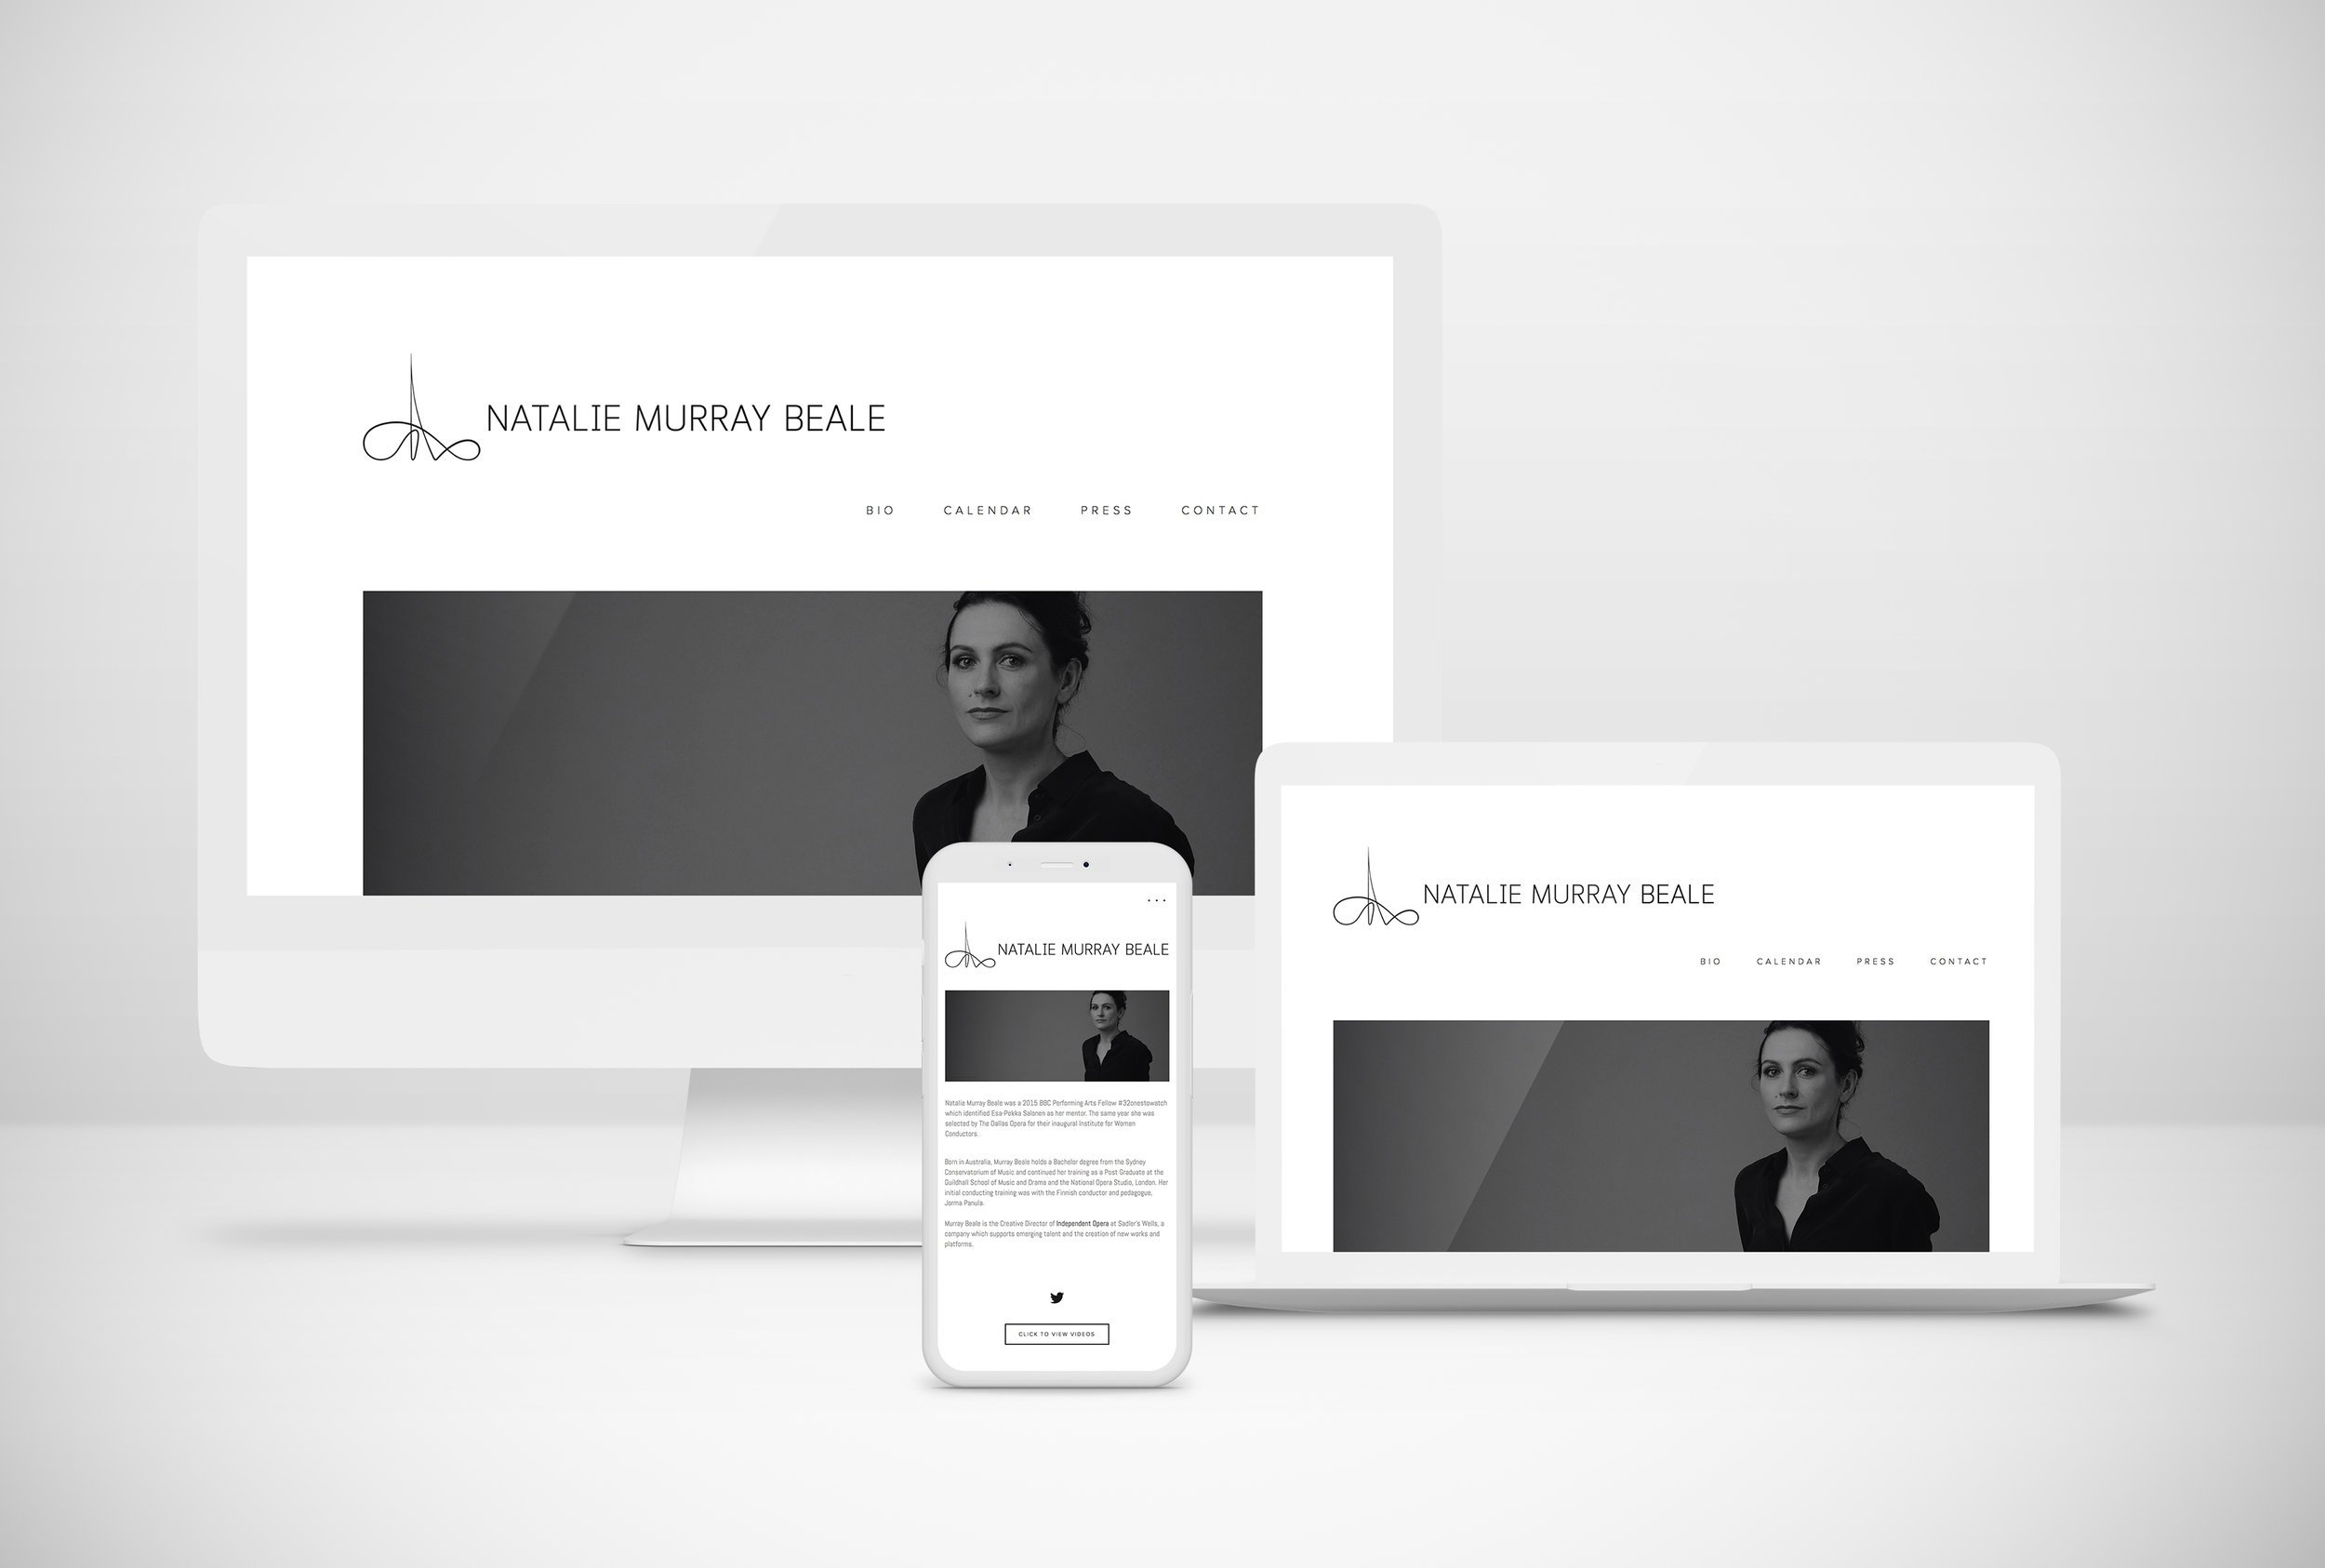 Website Design - https://www.murraybeale.com    Minimalism is understated yet confident and suggests professionalism. Therefore, the design was stripped down to its bare essentials to put focus on the content. The black-and-white colour scheme, simple layout, minimal sans-serif typography creates an air of elegance and sophistication. No unnecessary features or detailing grants effortless usability.